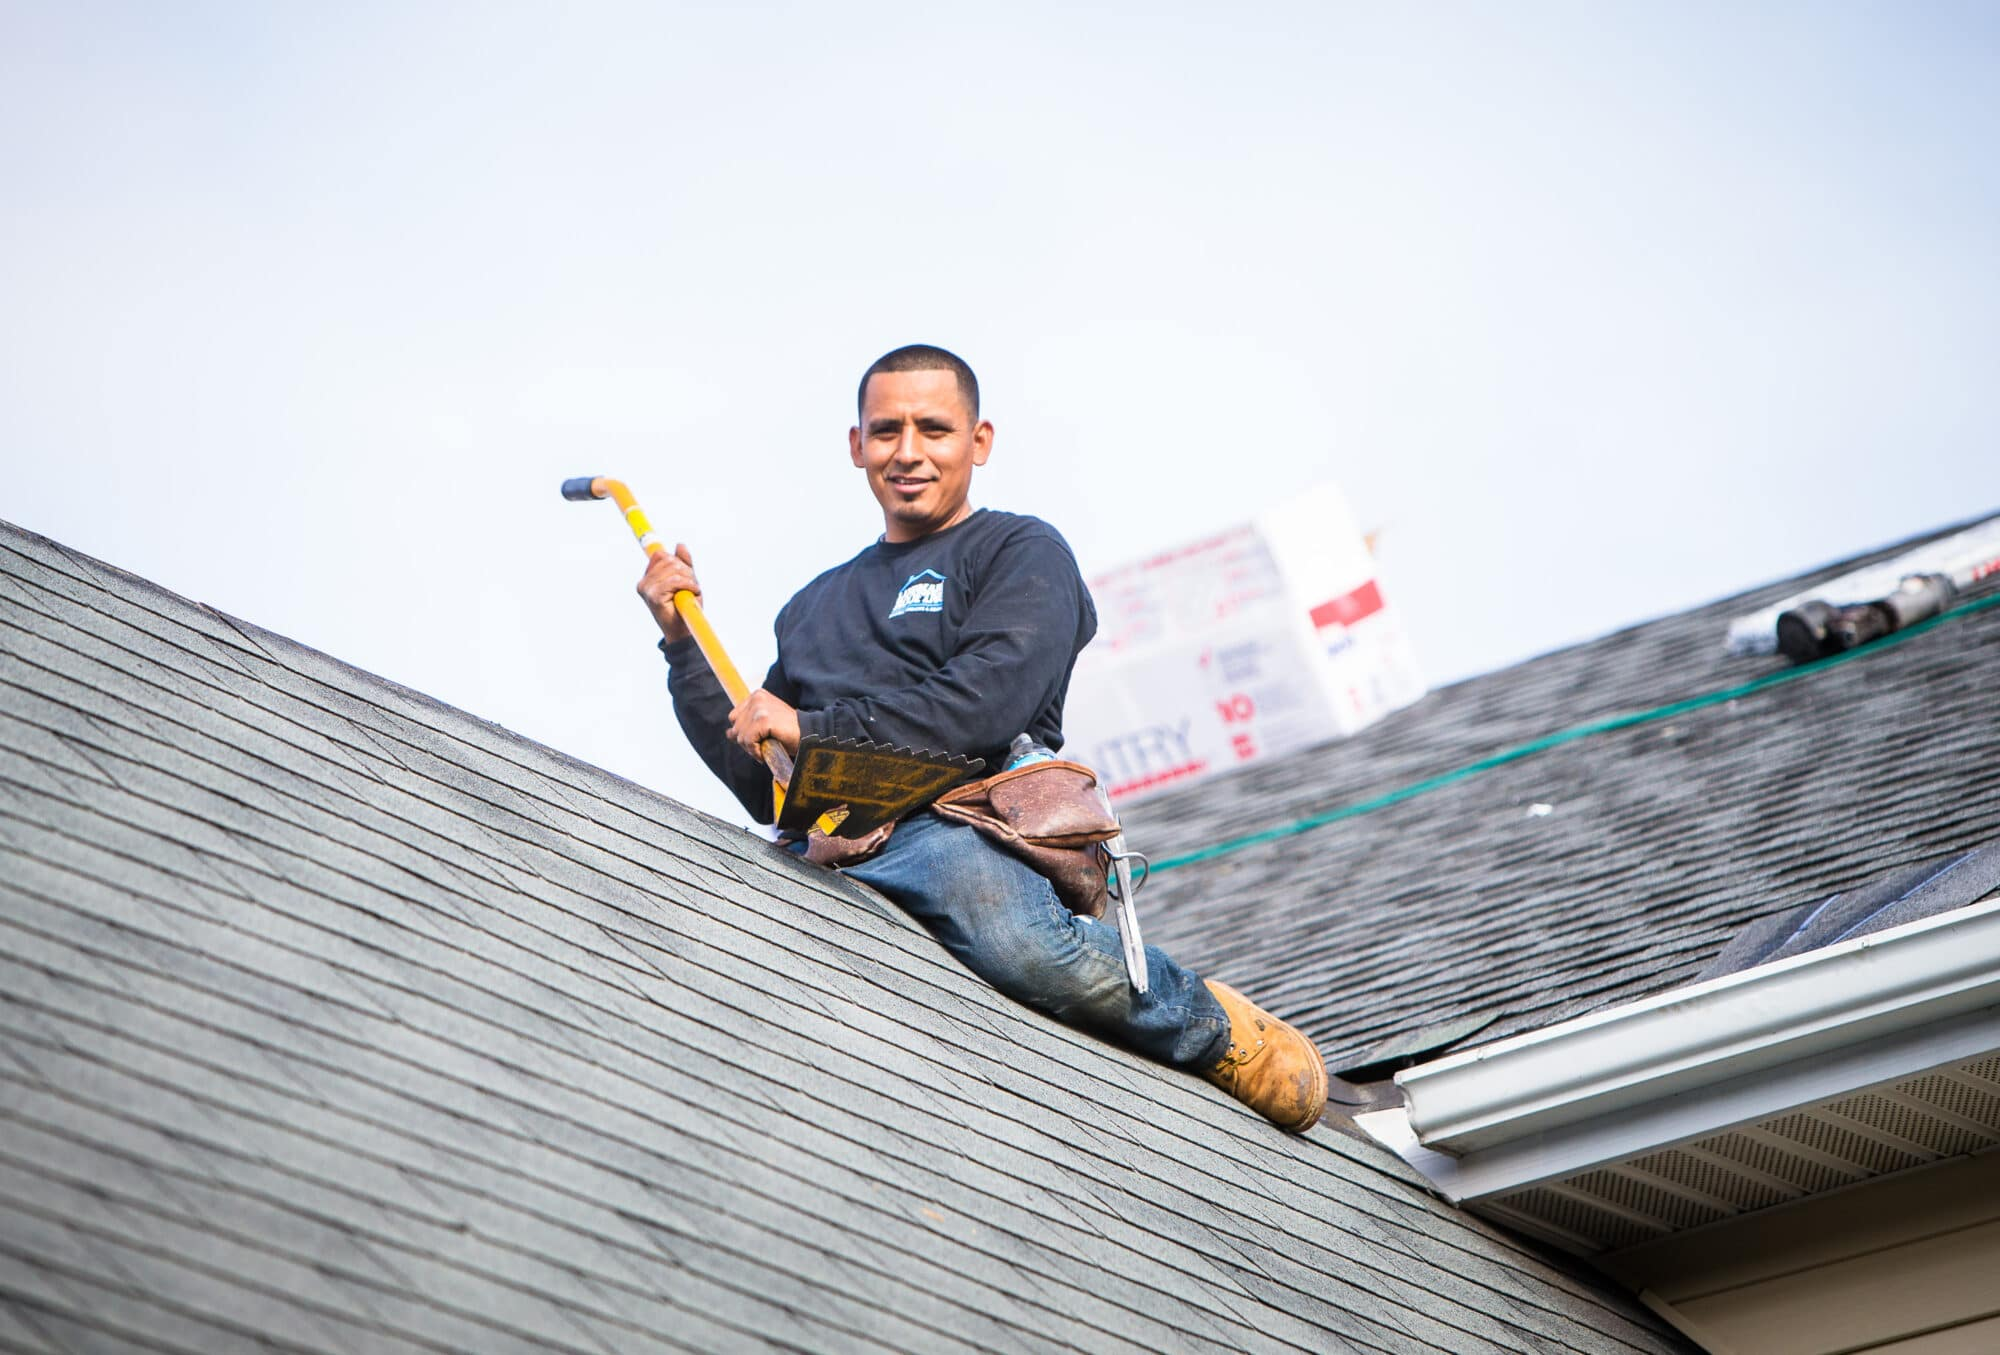 Do You Need a New Roof, or Just a Roof Repair? - Landmark Roofing